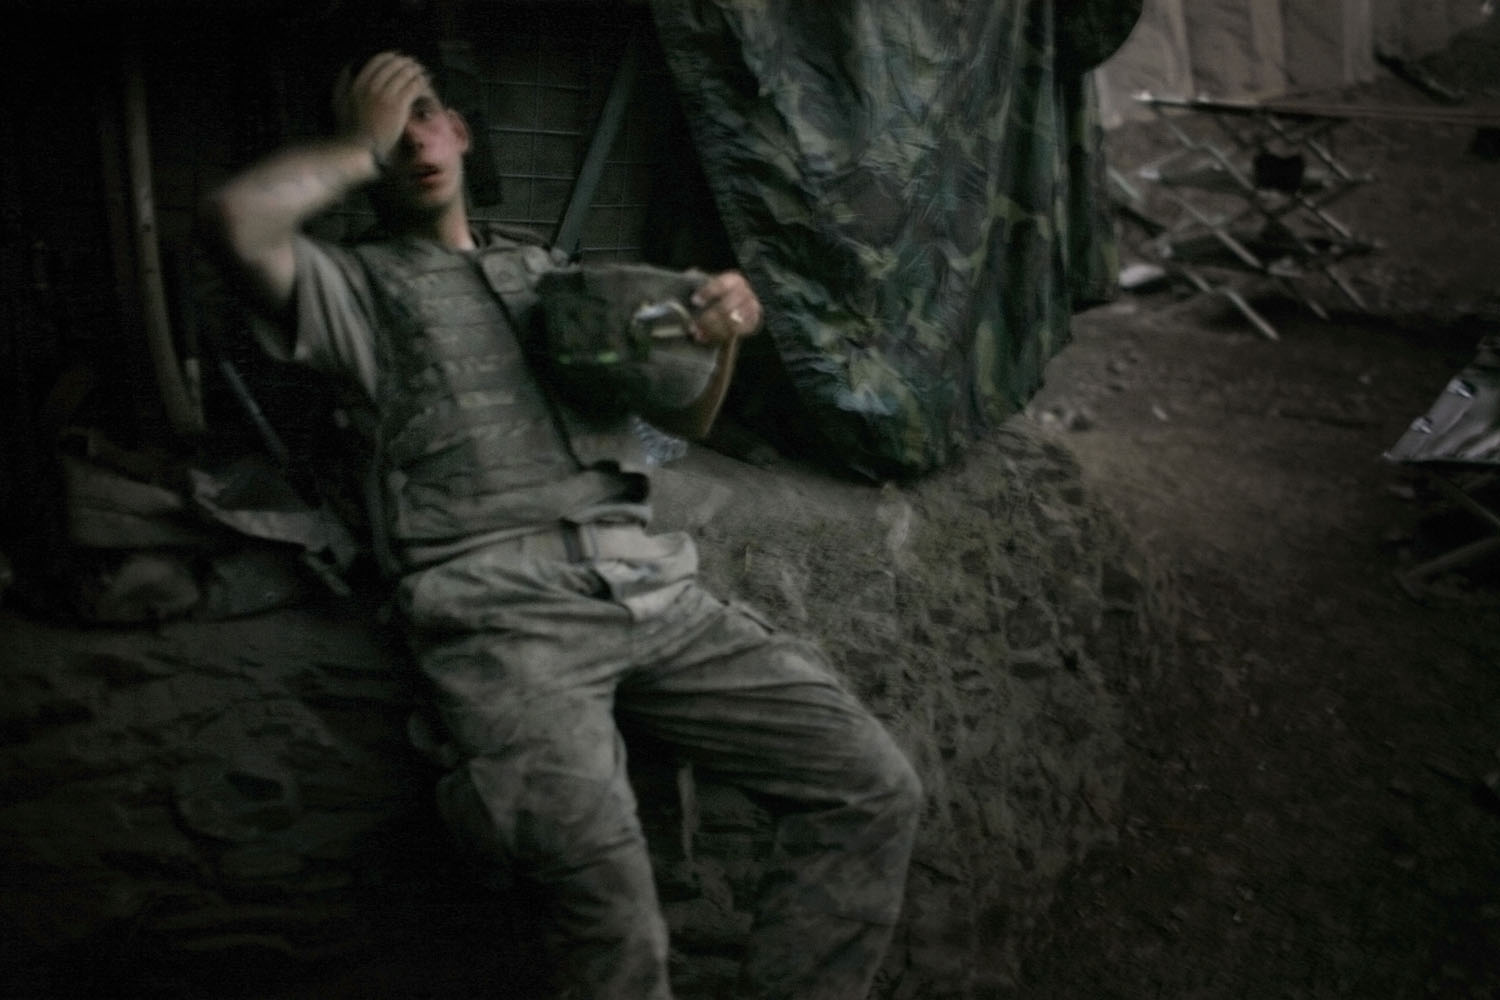 A soldier from 2nd platoon rests at the end of a day of heavy fighting at the 'Restrepo' outpost. The position was named after the medic Juan Restrepo from 2nd Platoon who was killed by insurgents in July 2007. Korengal Valley, Afghanistan. 2007.                                                                                             (WPP 1st prize, Photo of the Year, 2007)